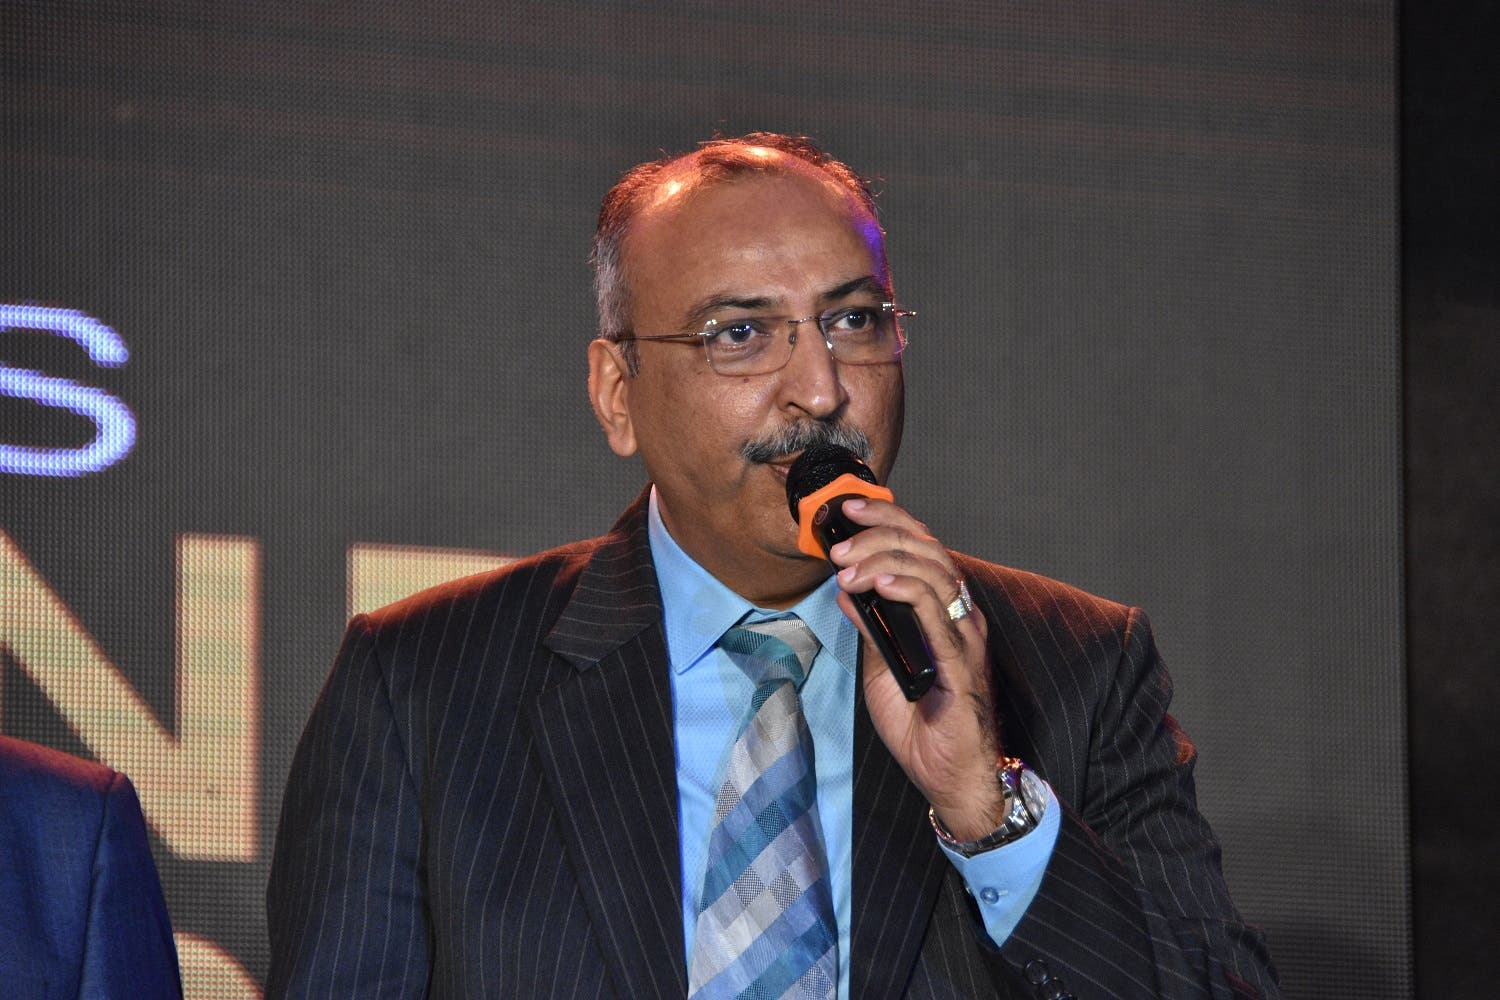 Nilesh Mandlewala is the founder and president of Donate Life, which has so far procured 494 organs to help patients. (Supplied)